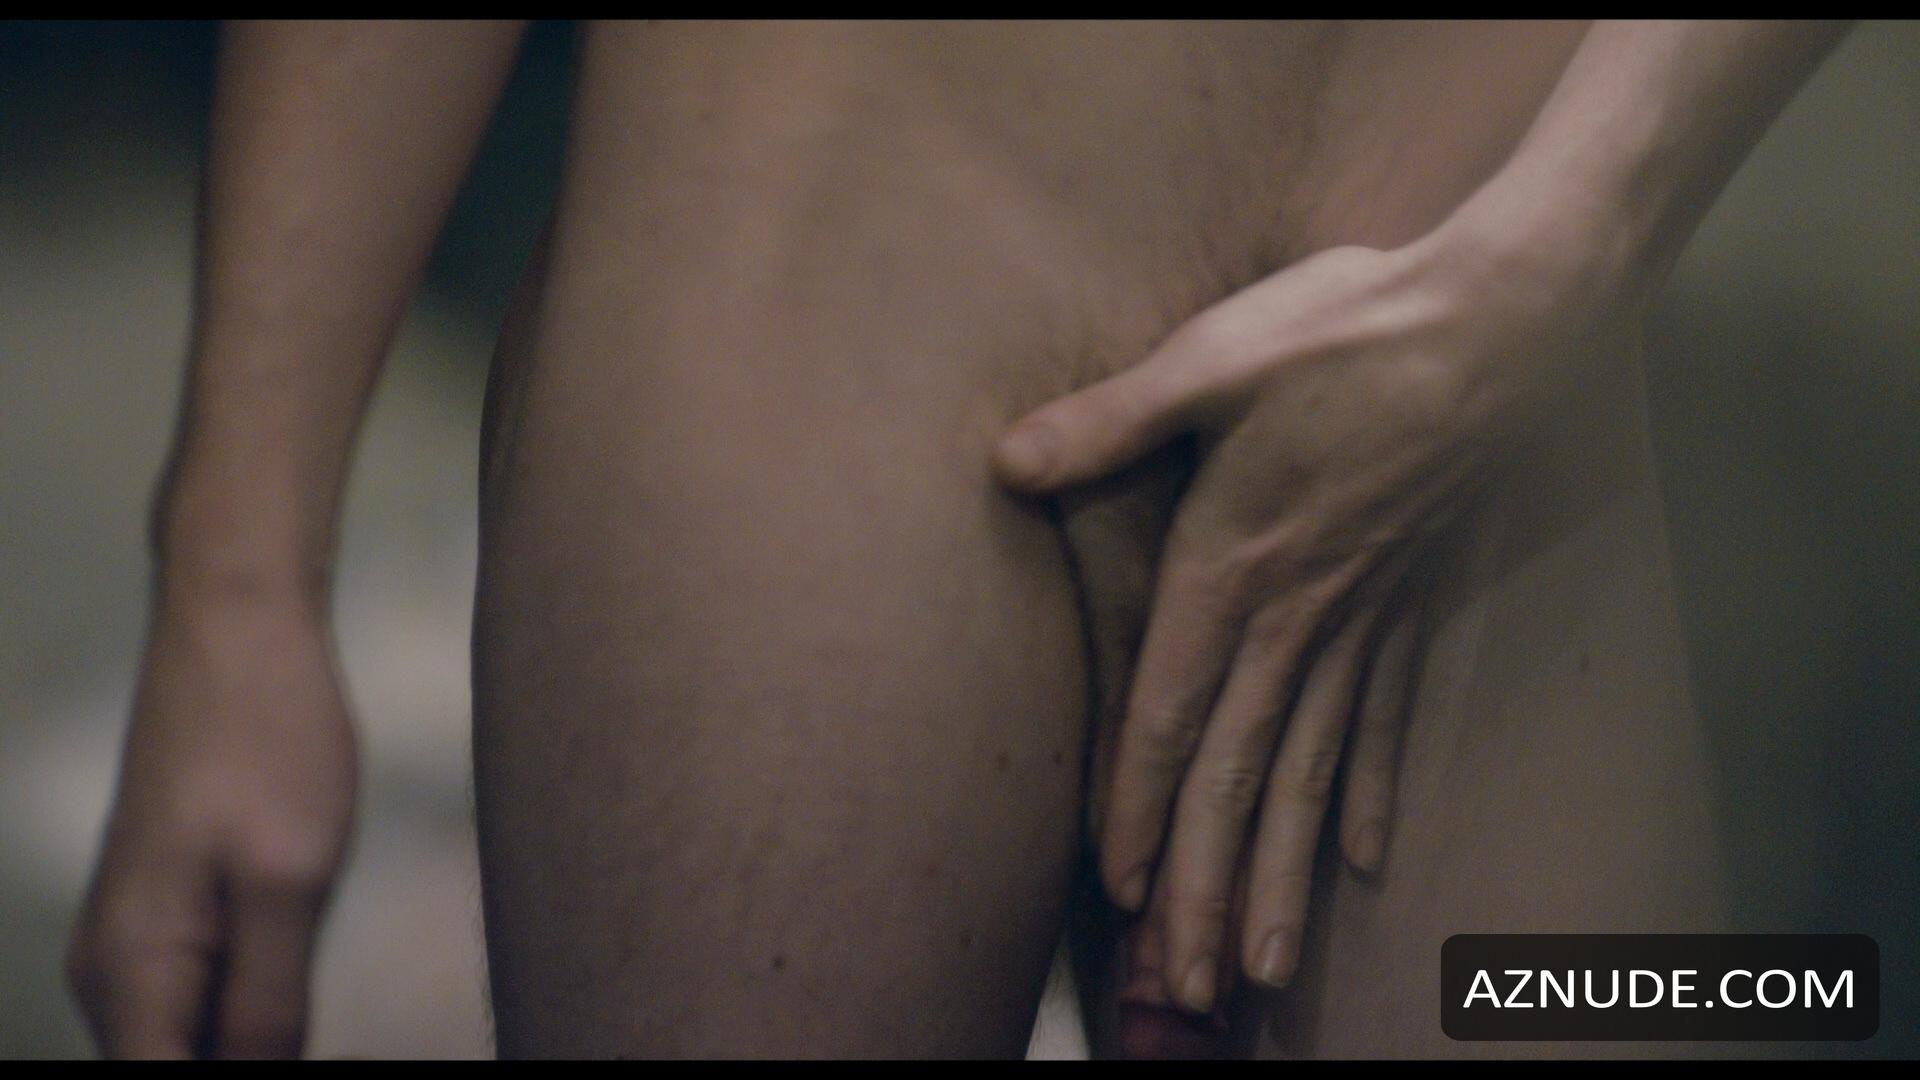 Alicia vikander topless in son of a gun scandalplanetcom - 3 part 5